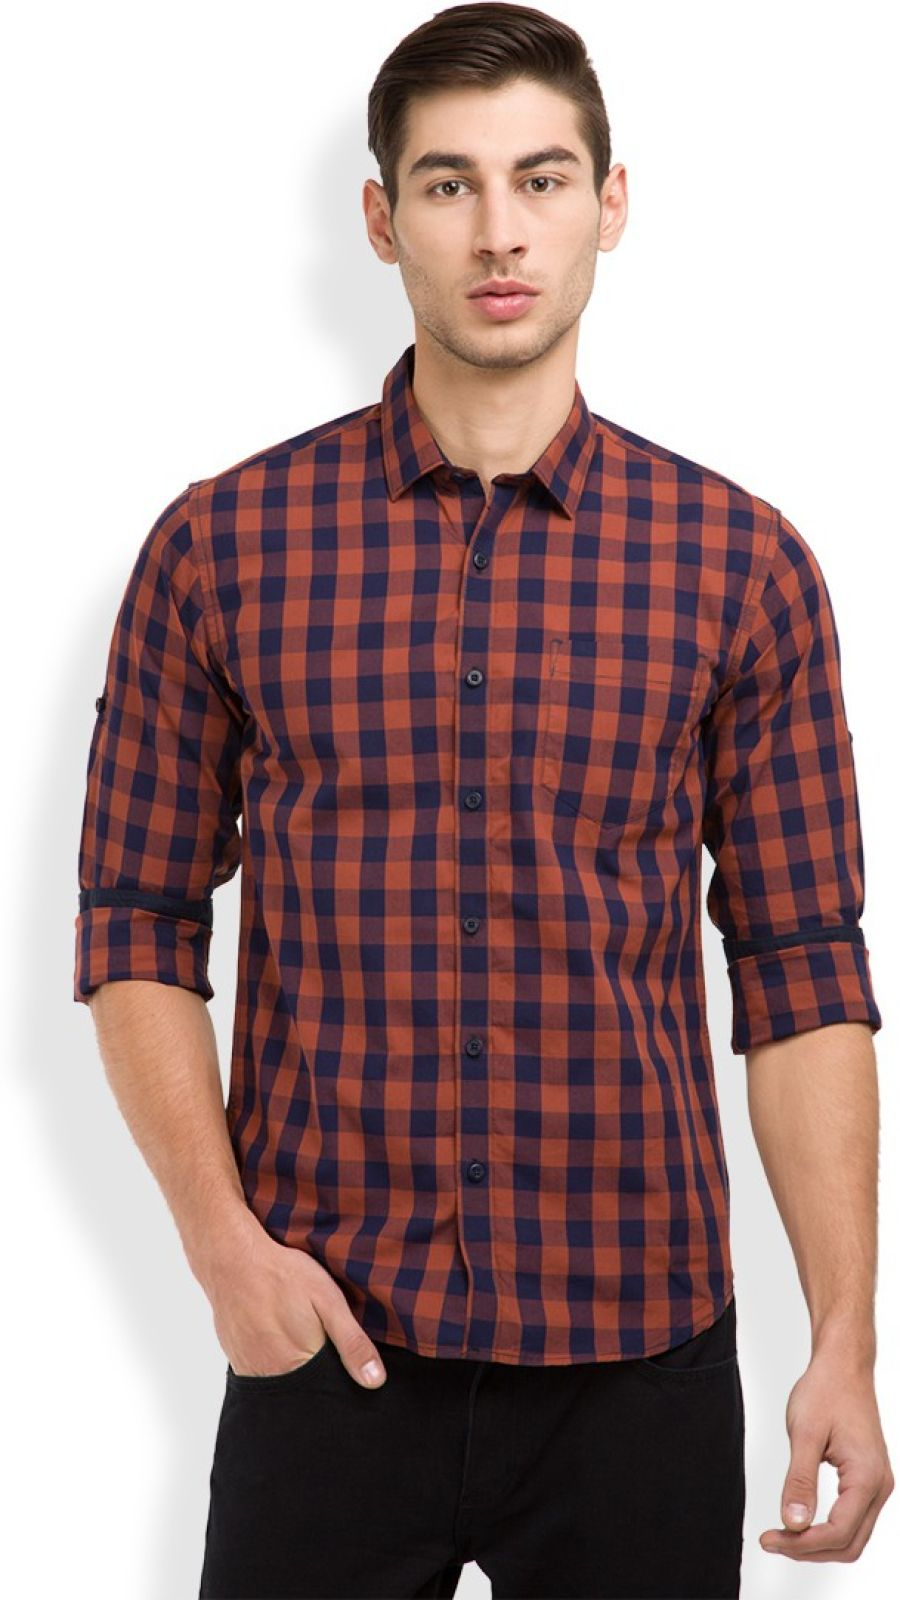 Highlander Mens Checkered Casual Dark Blue, Red Shirt